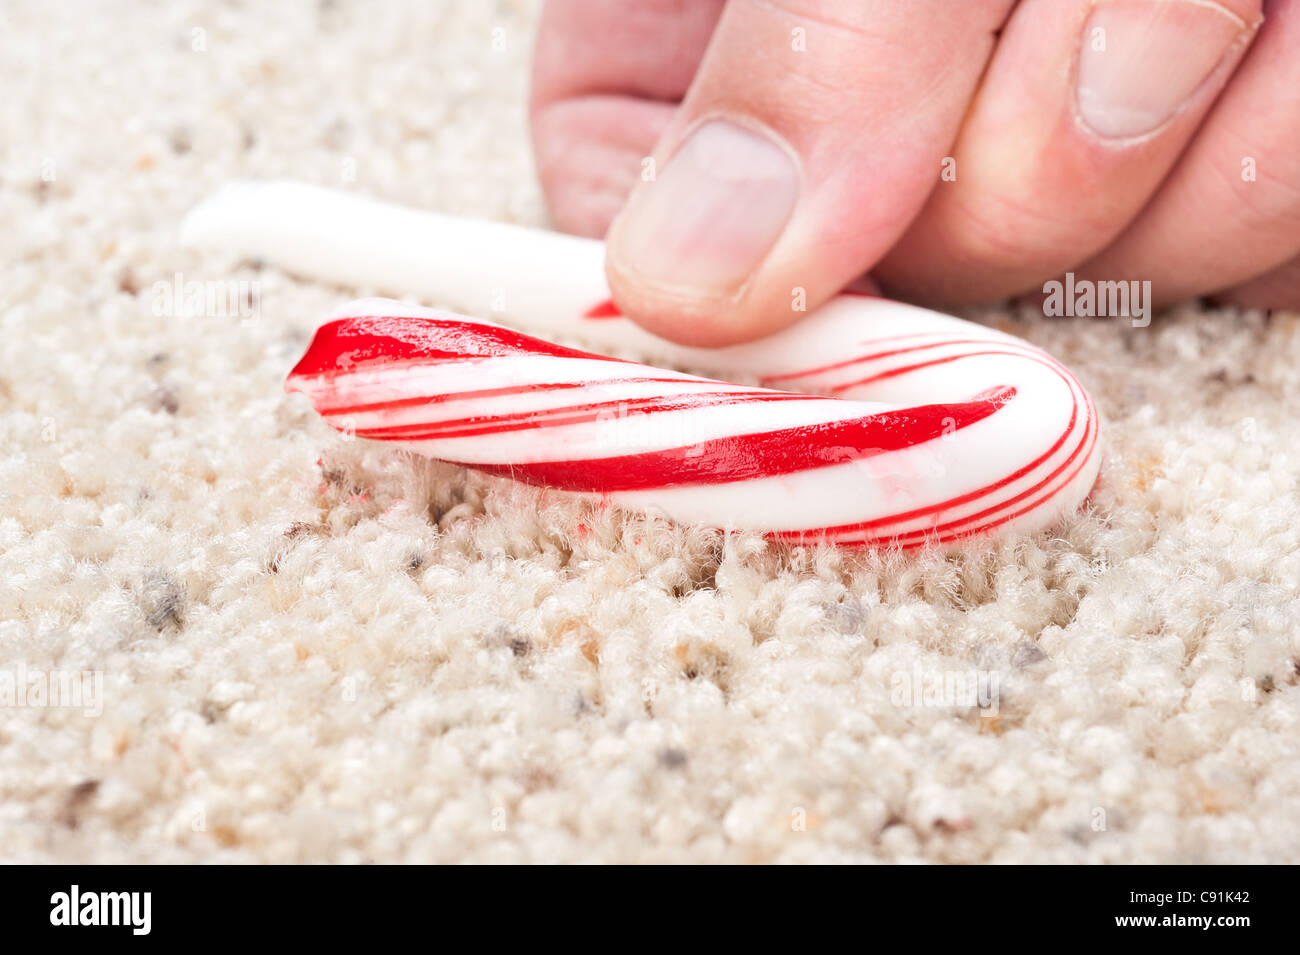 A man picks up a dropped candy cane that is stick to carpet fibers. - Stock Image